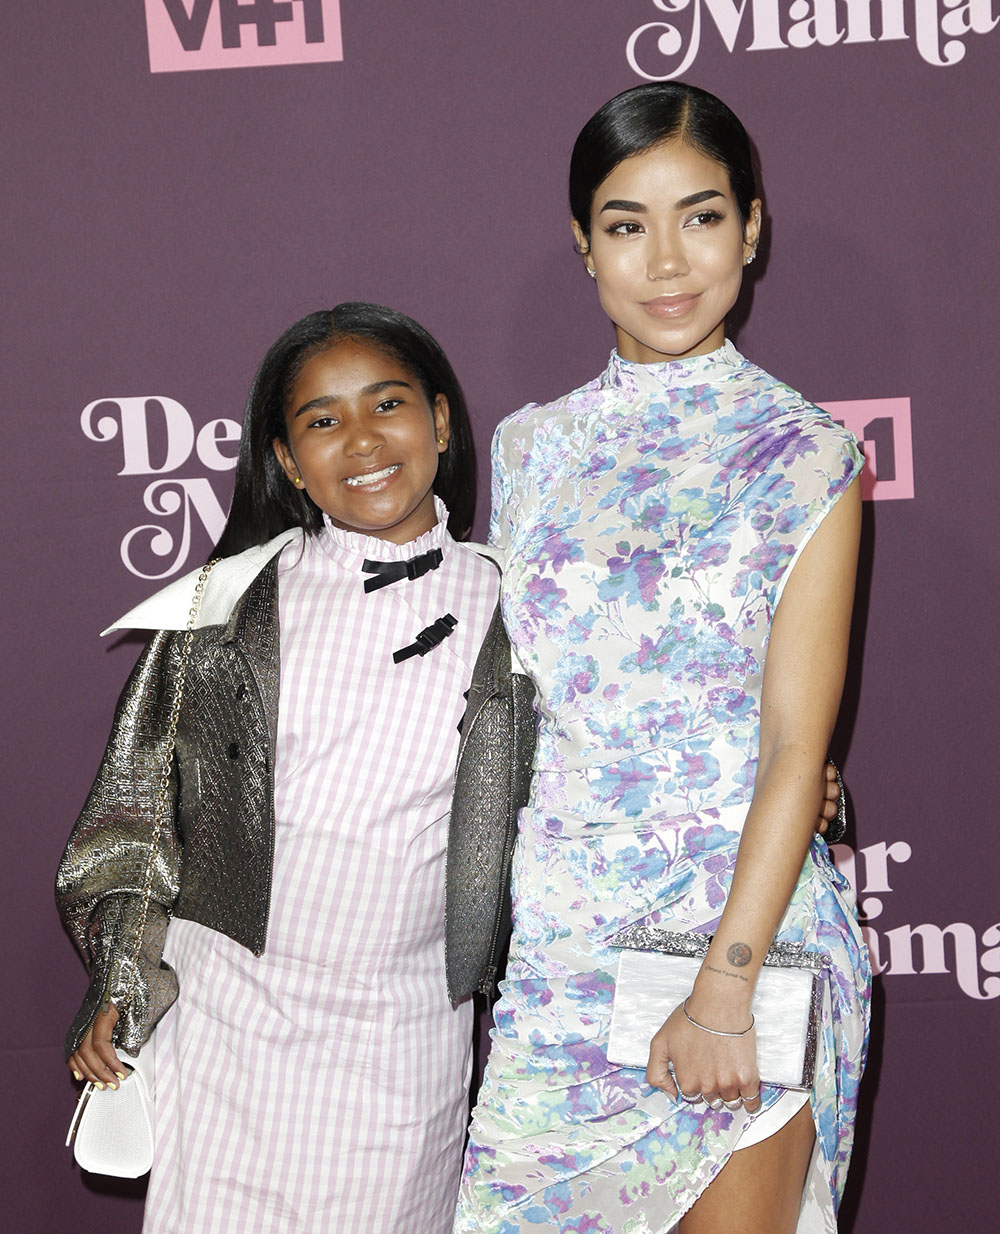 Jhene Aiko and daughter Namiko | Sandra Rose